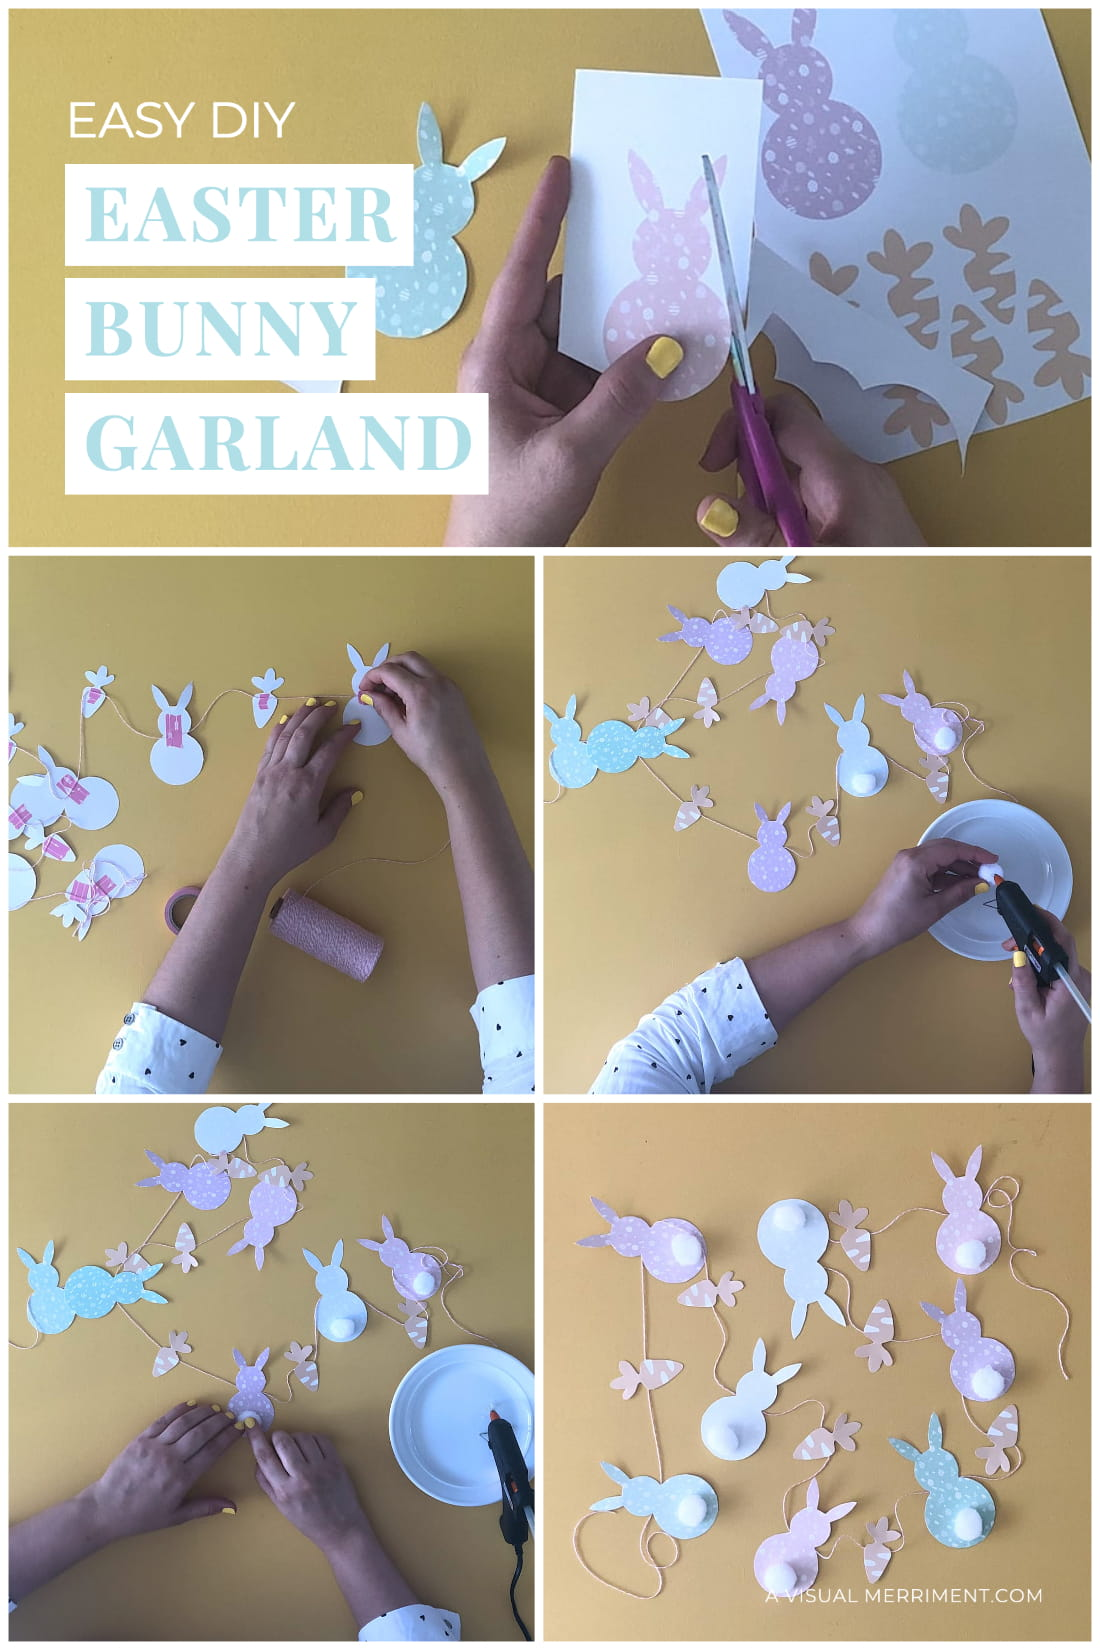 Multiple images of making Easter bunny garland